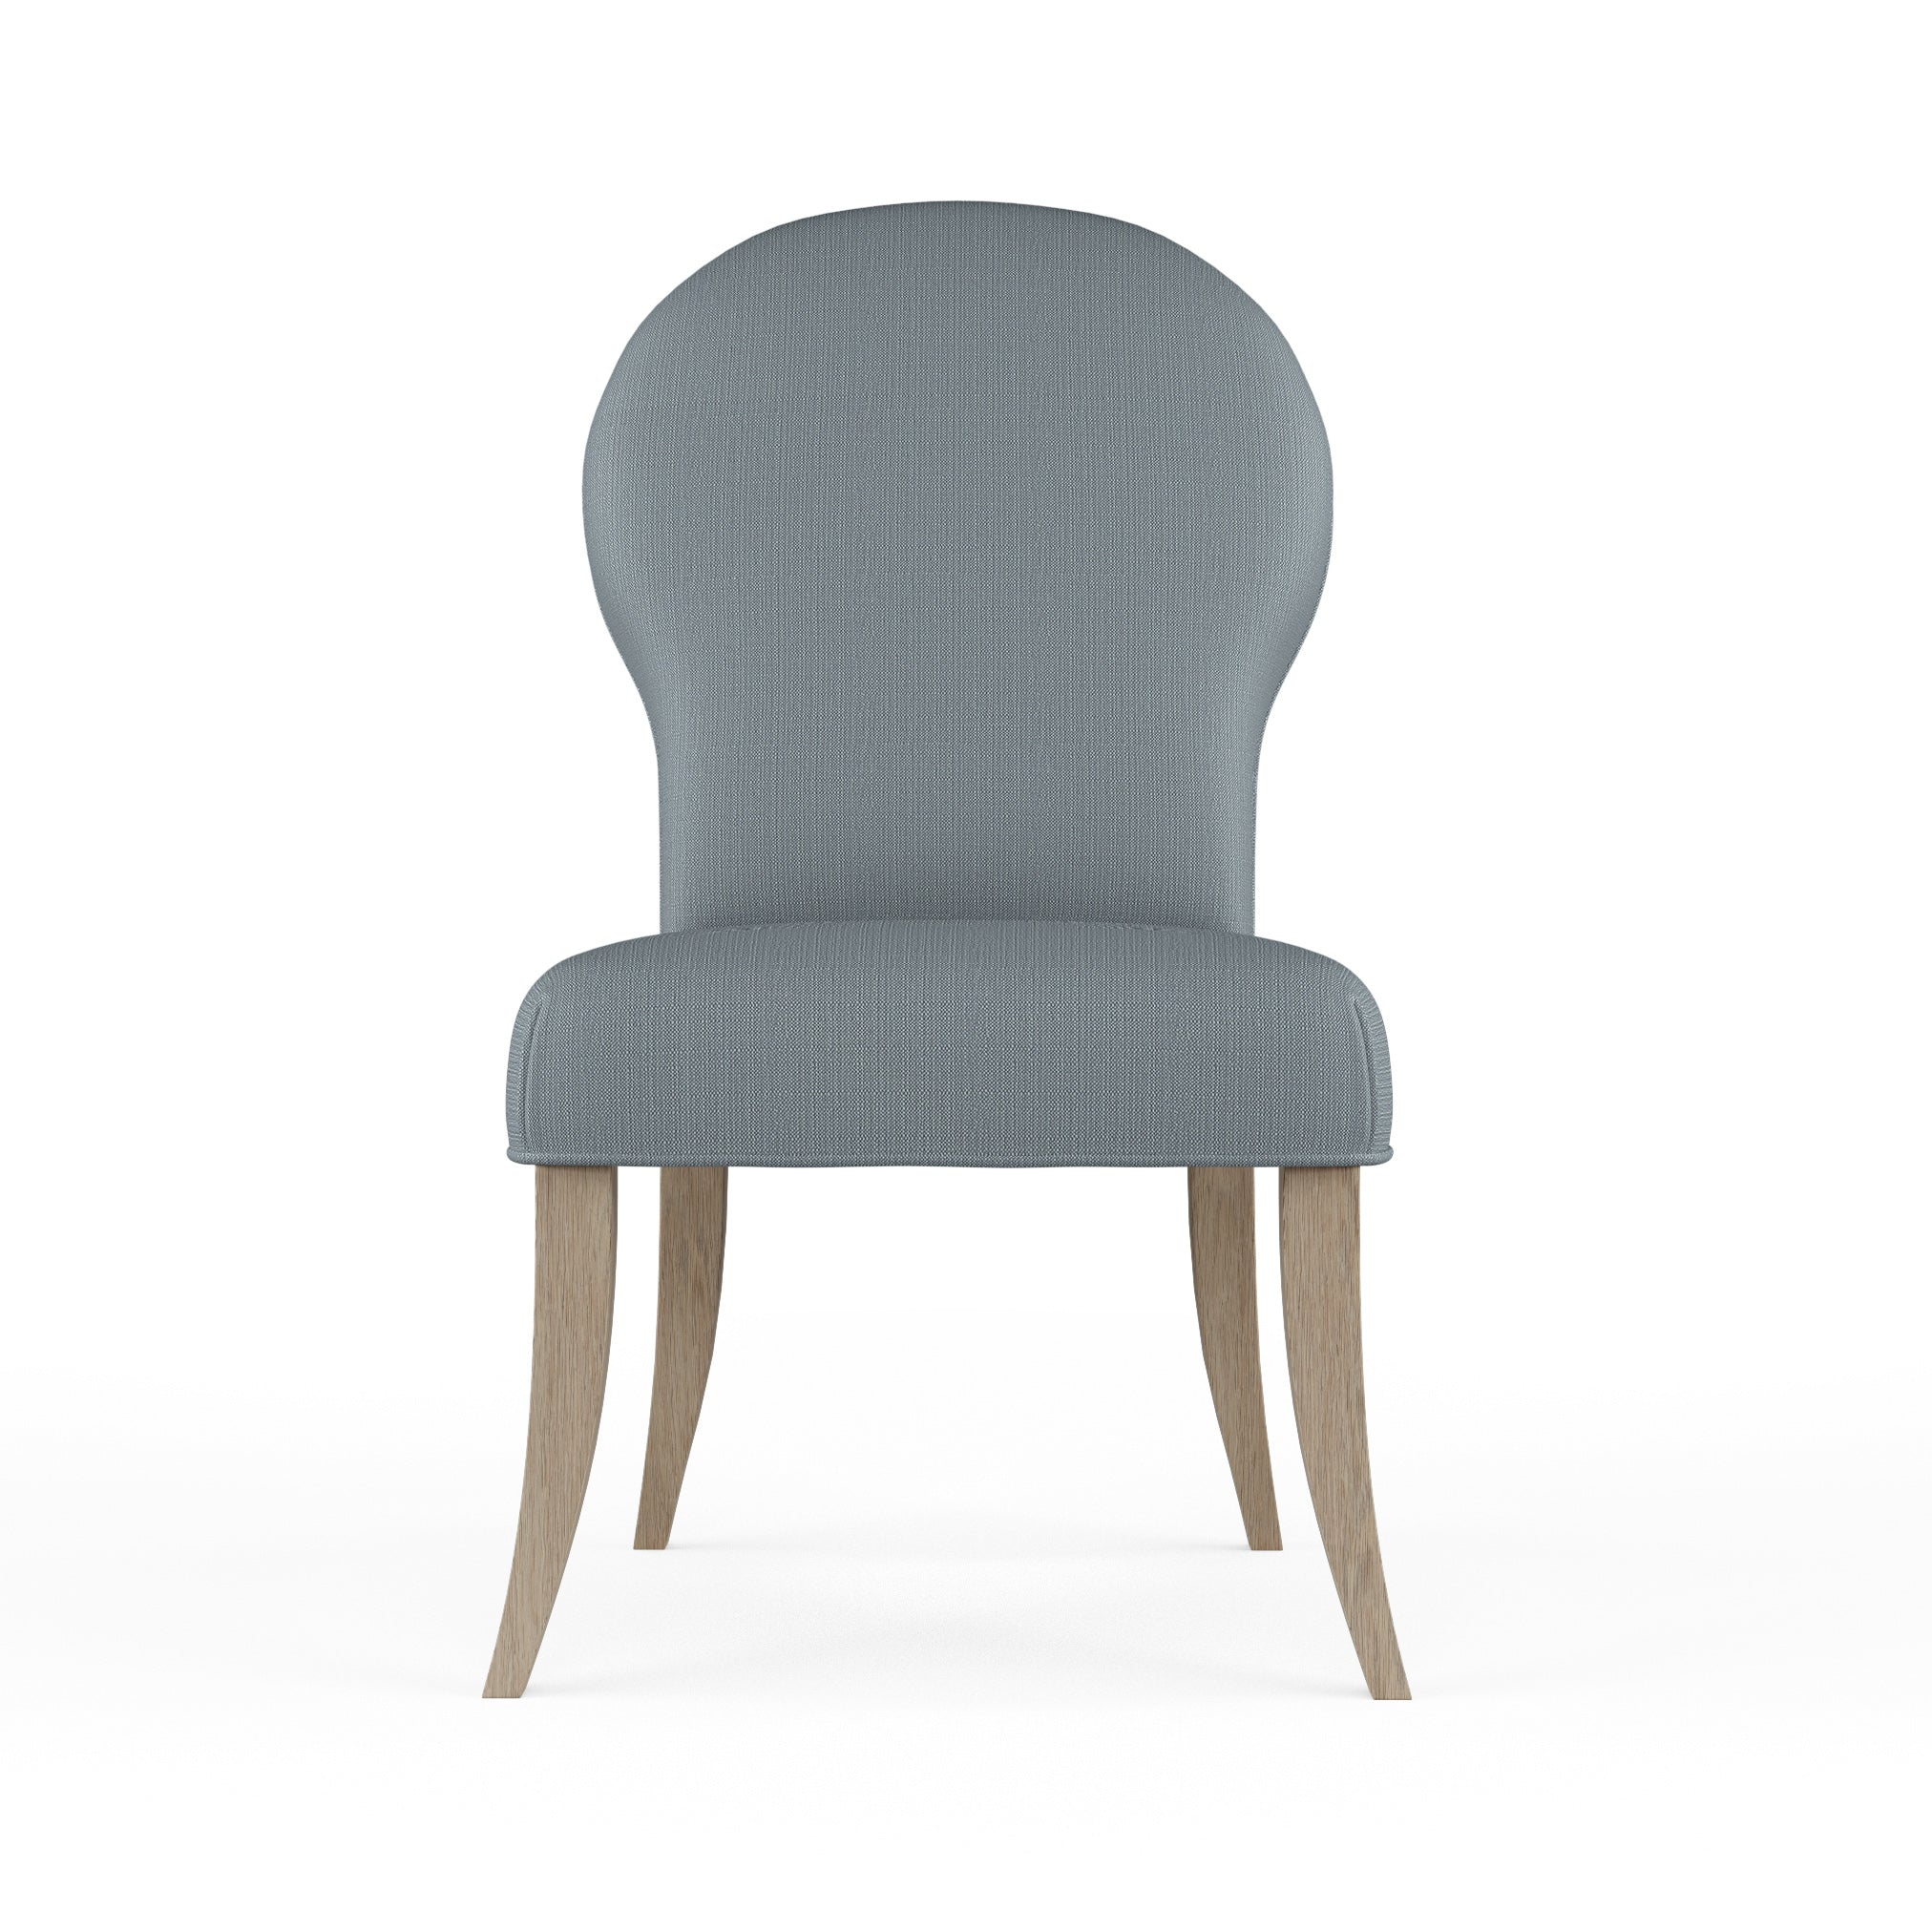 Caitlyn Dining Chair - Haze Box Weave Linen